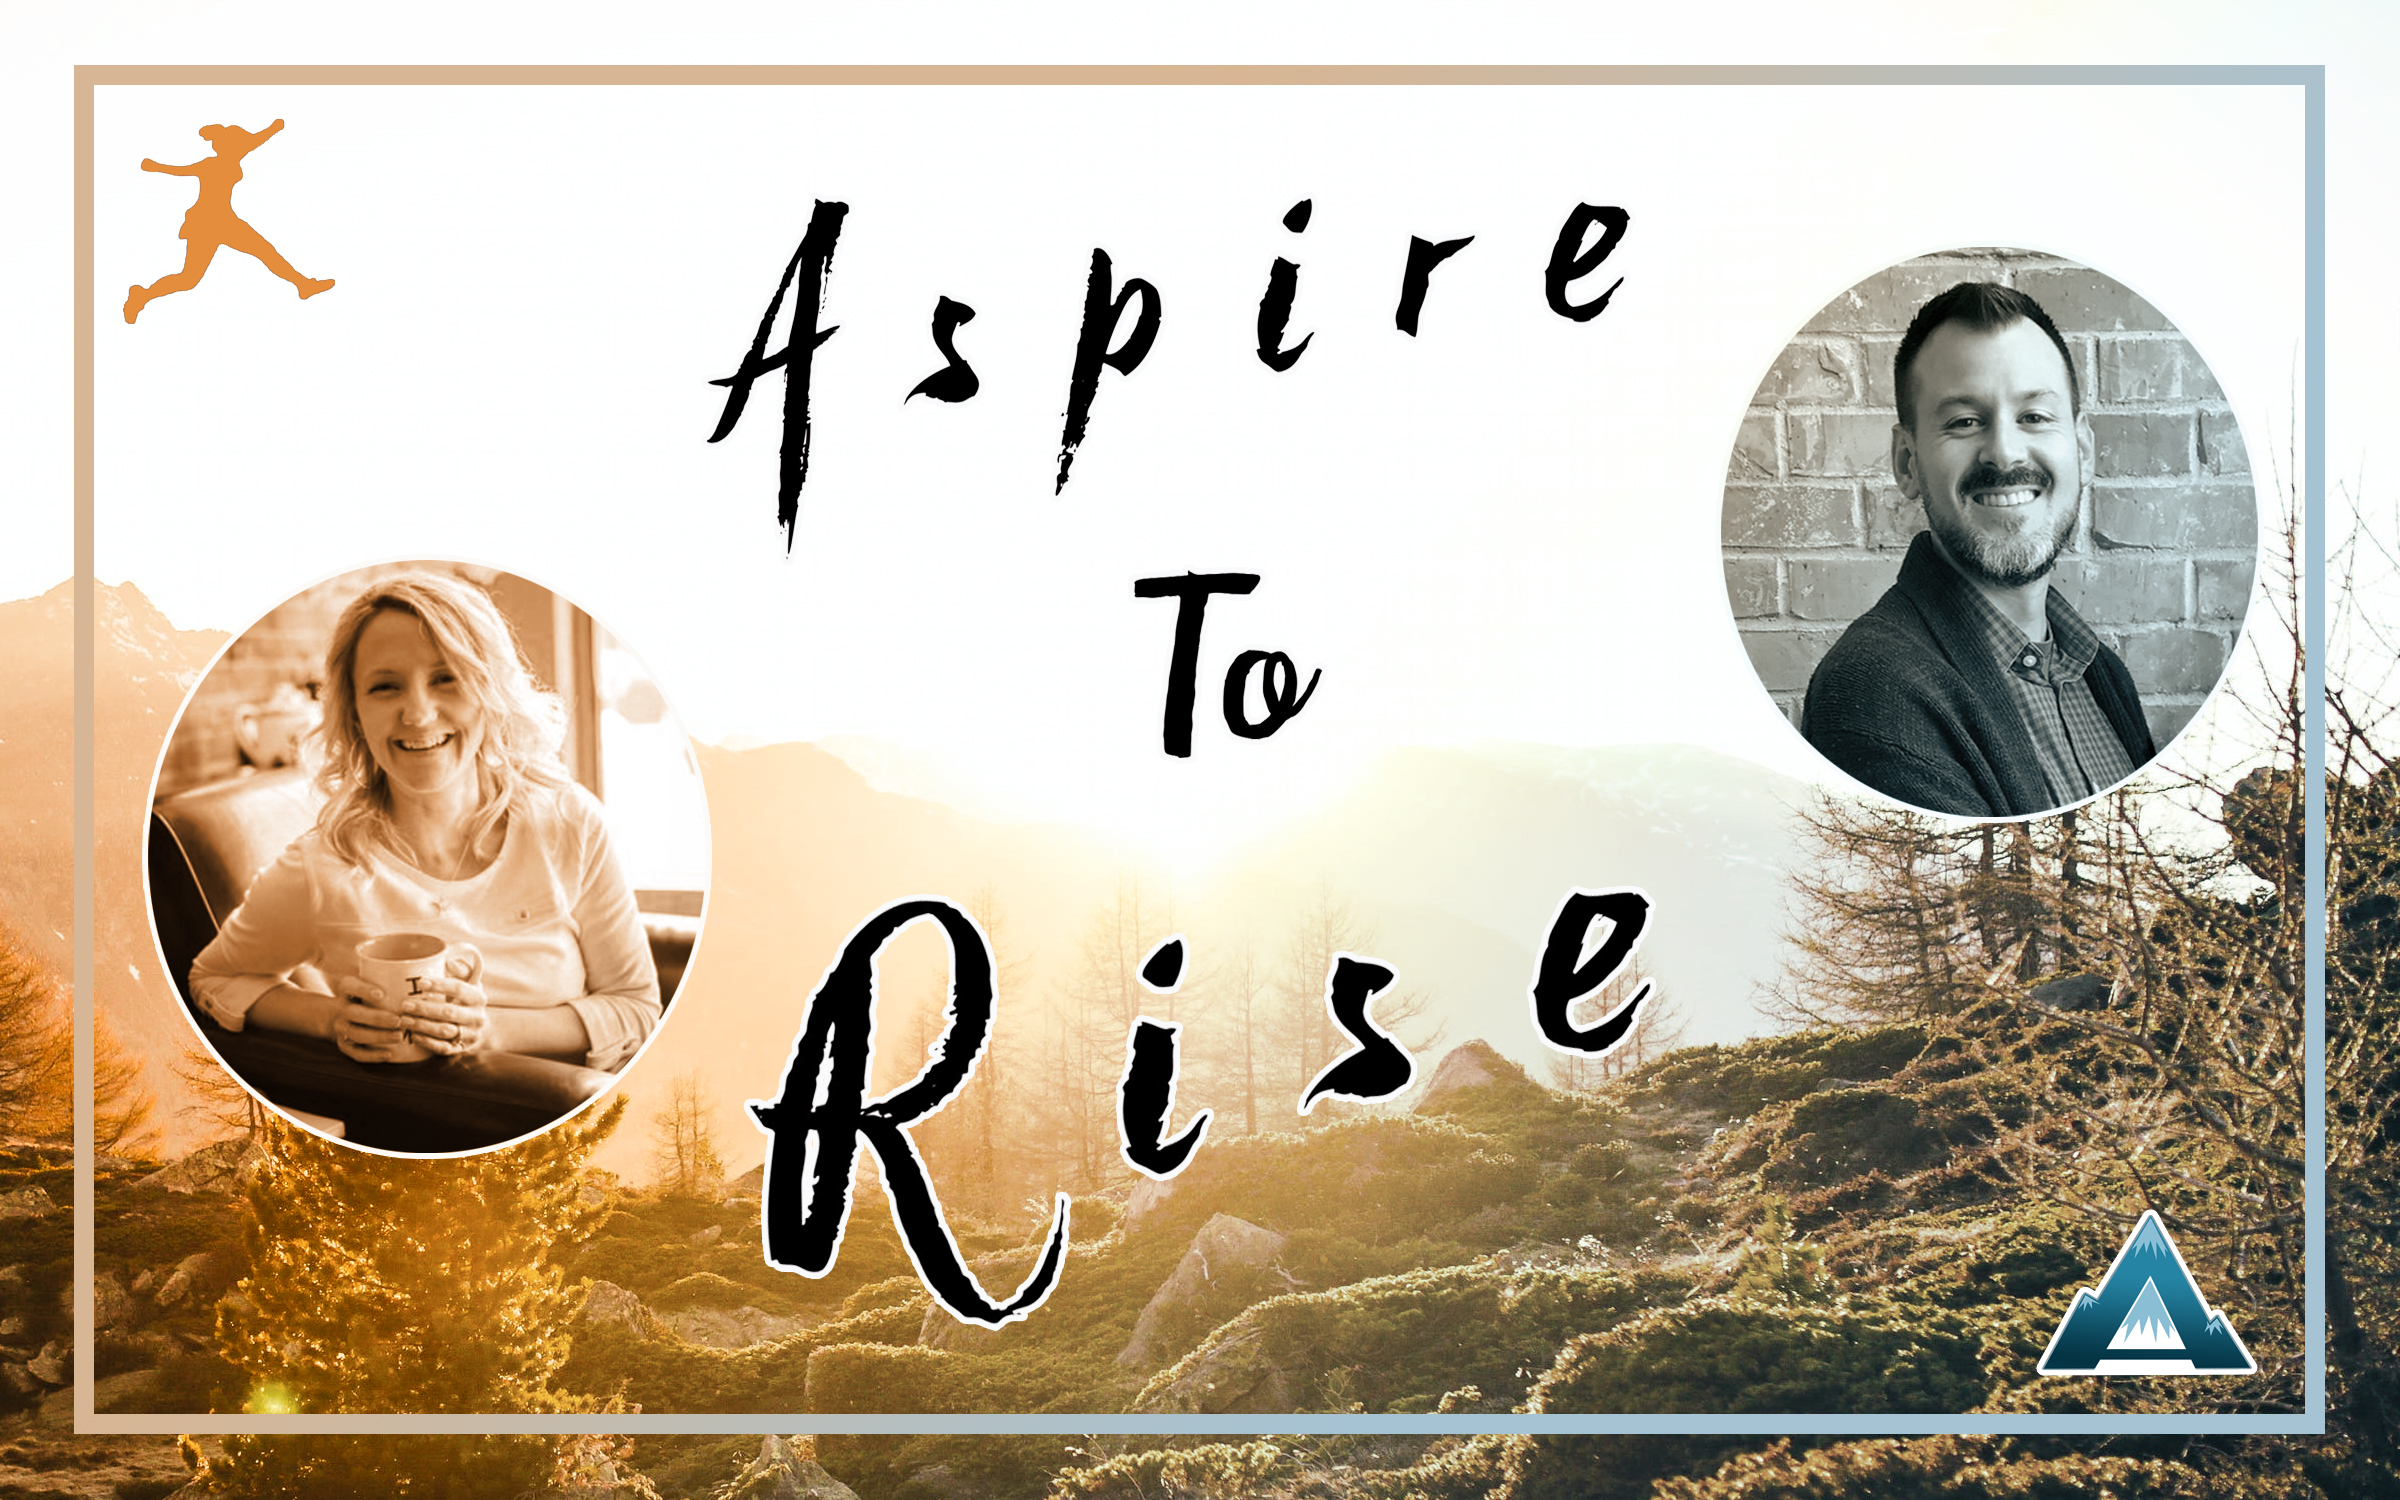 Aspire to Rise, Sarah Johnson, Joshua Stamper, #AspireLead, #inAWEtoRISE